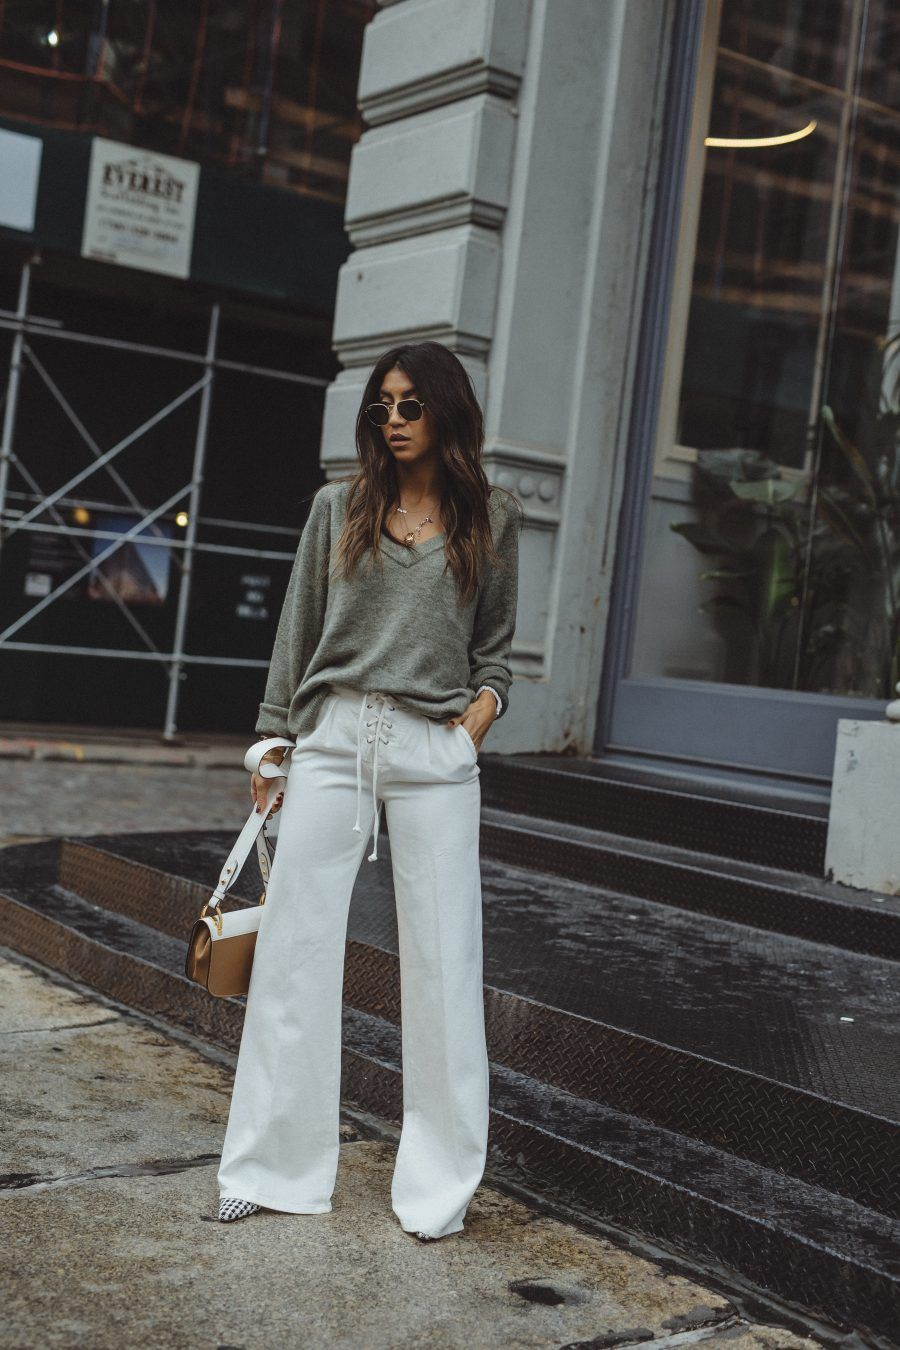 blog streetstyle not your standard fashion outfit style kayla seah prada  new york soho 11 corward chloe lace up flares h m sweater d09e81cabf